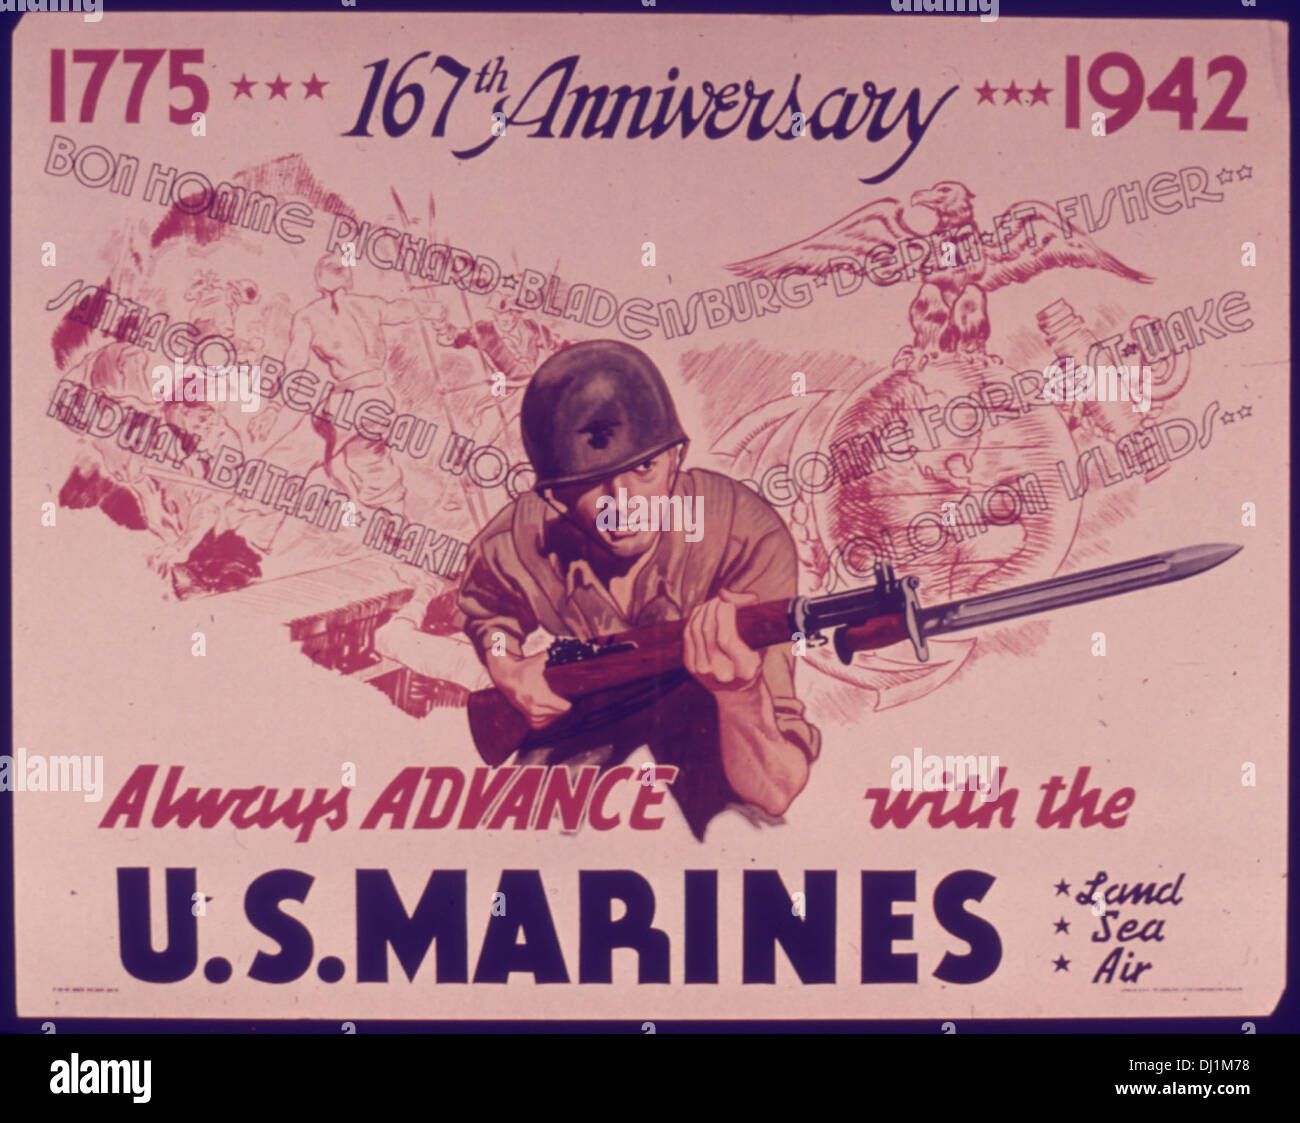 ONE HUNDRED SIXTY SEVEN ANNIVERSARY... ALWAYS ADVANCE WITH THE U.S. MARINES. 124 - Stock Image